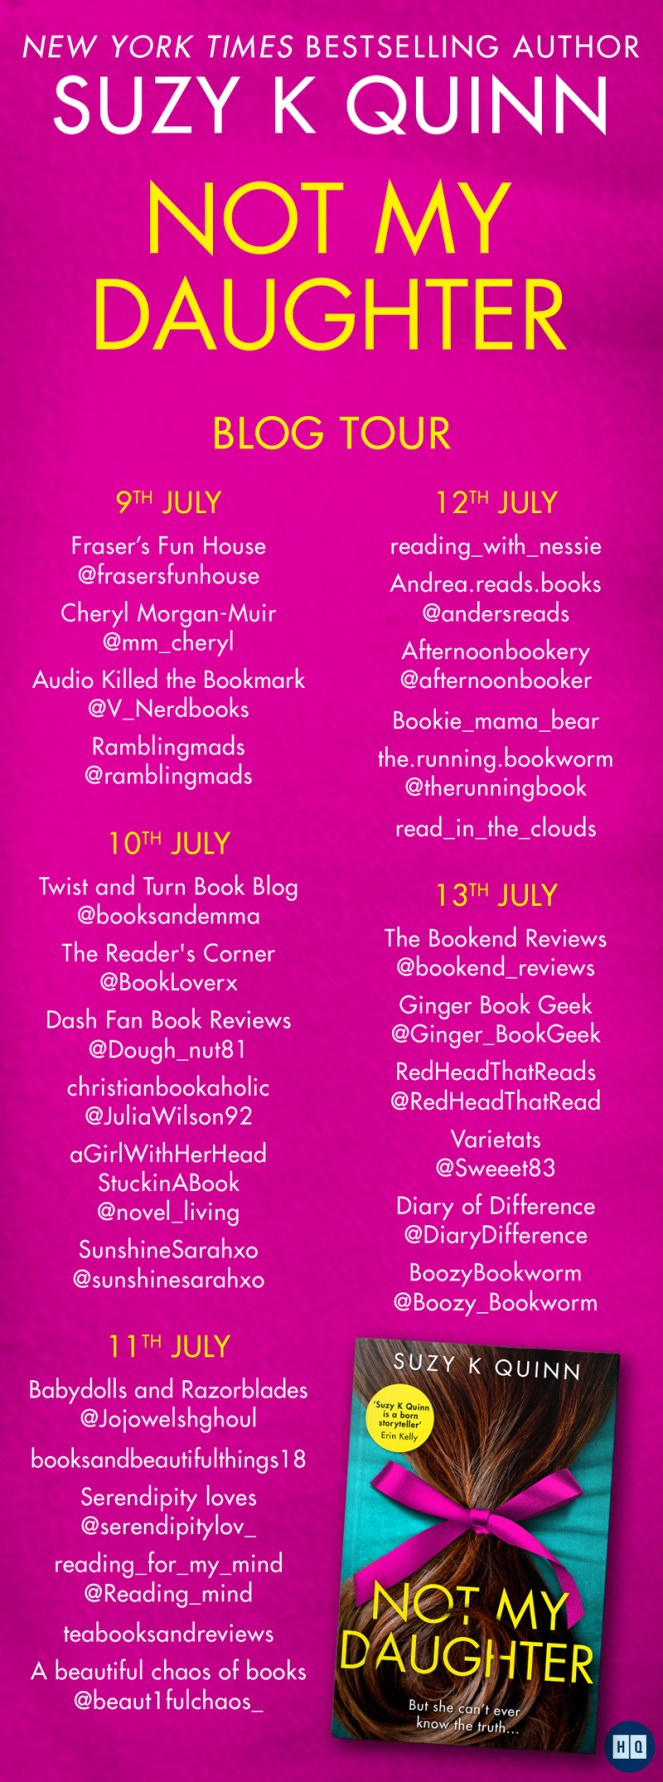 Not My Daughter by Suzy K Quinn HQ Blog Tour Book review blogger blogging diary of difference diary of difference